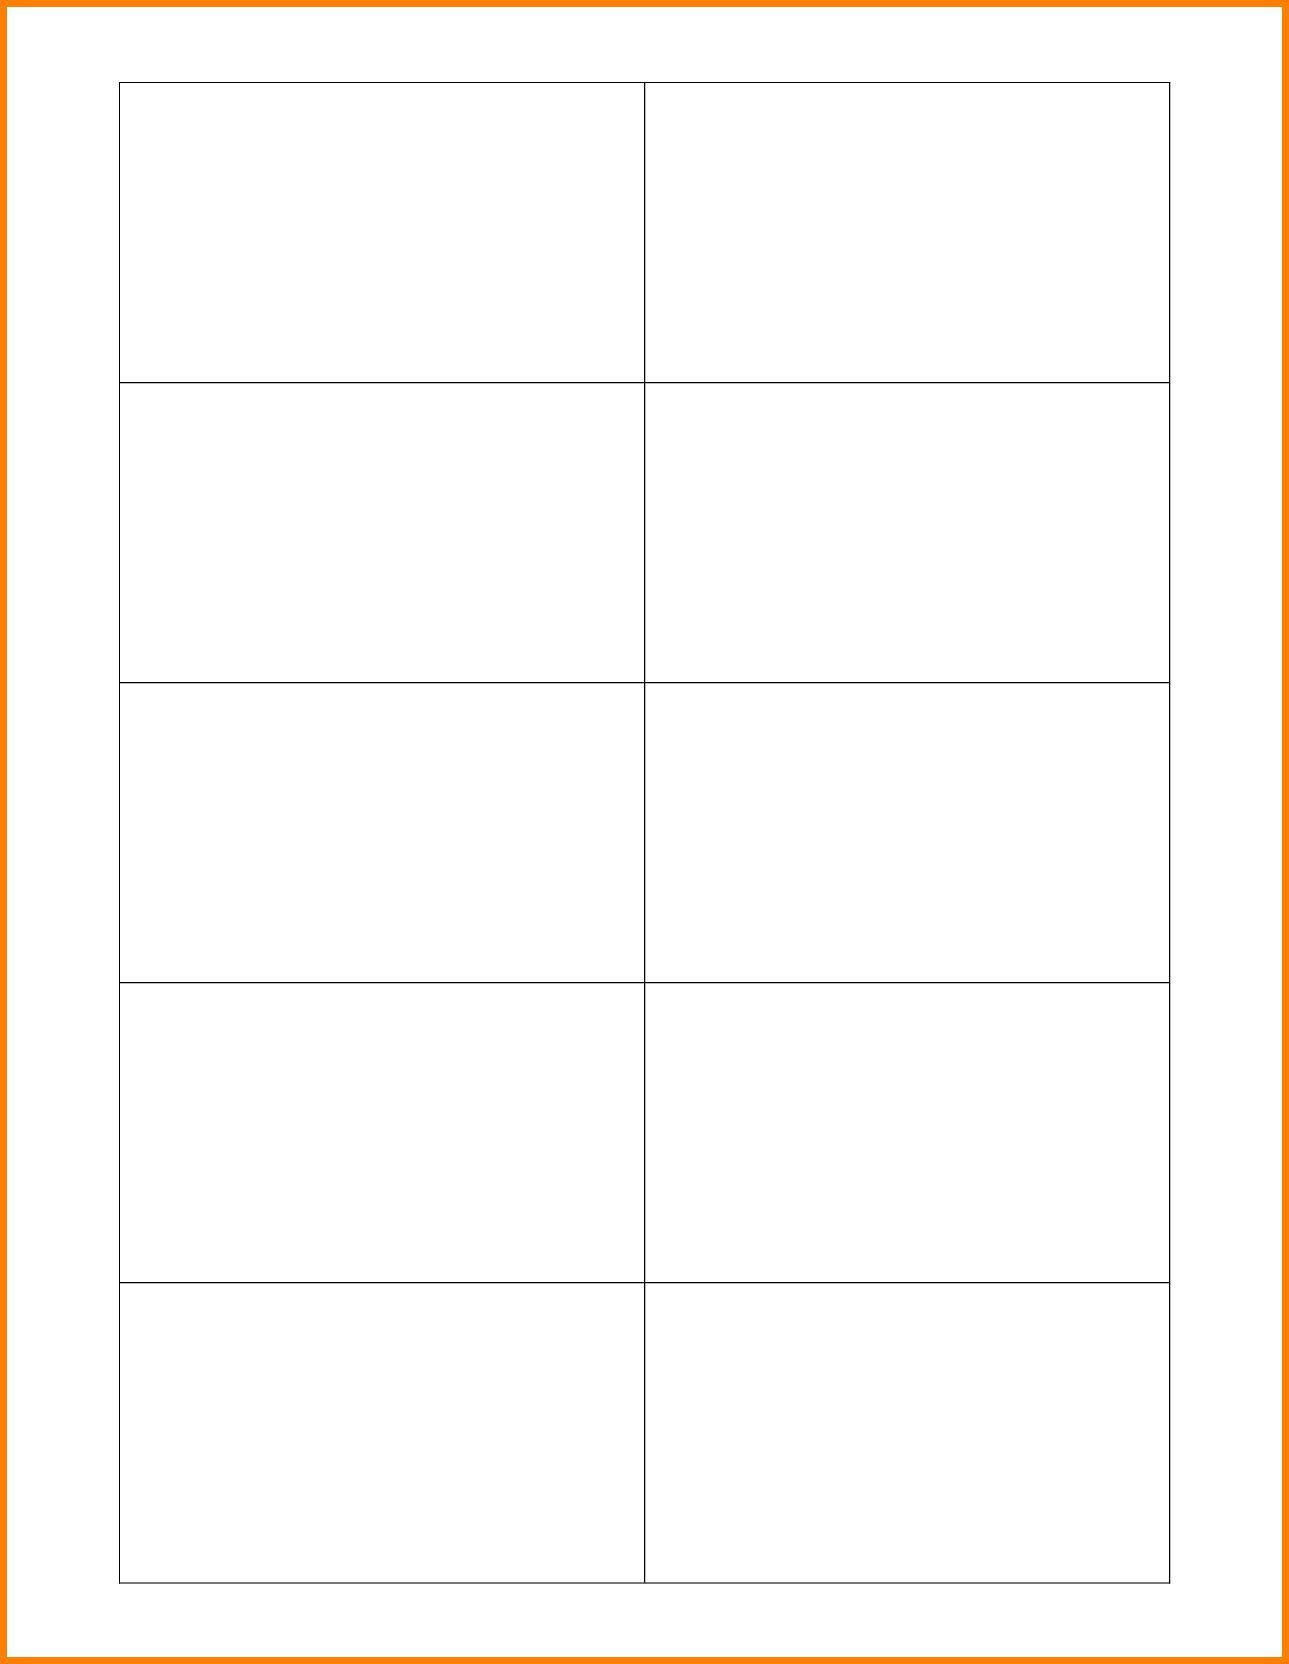 007 Astounding Free Printable Blank Busines Card Template For Word Example Full